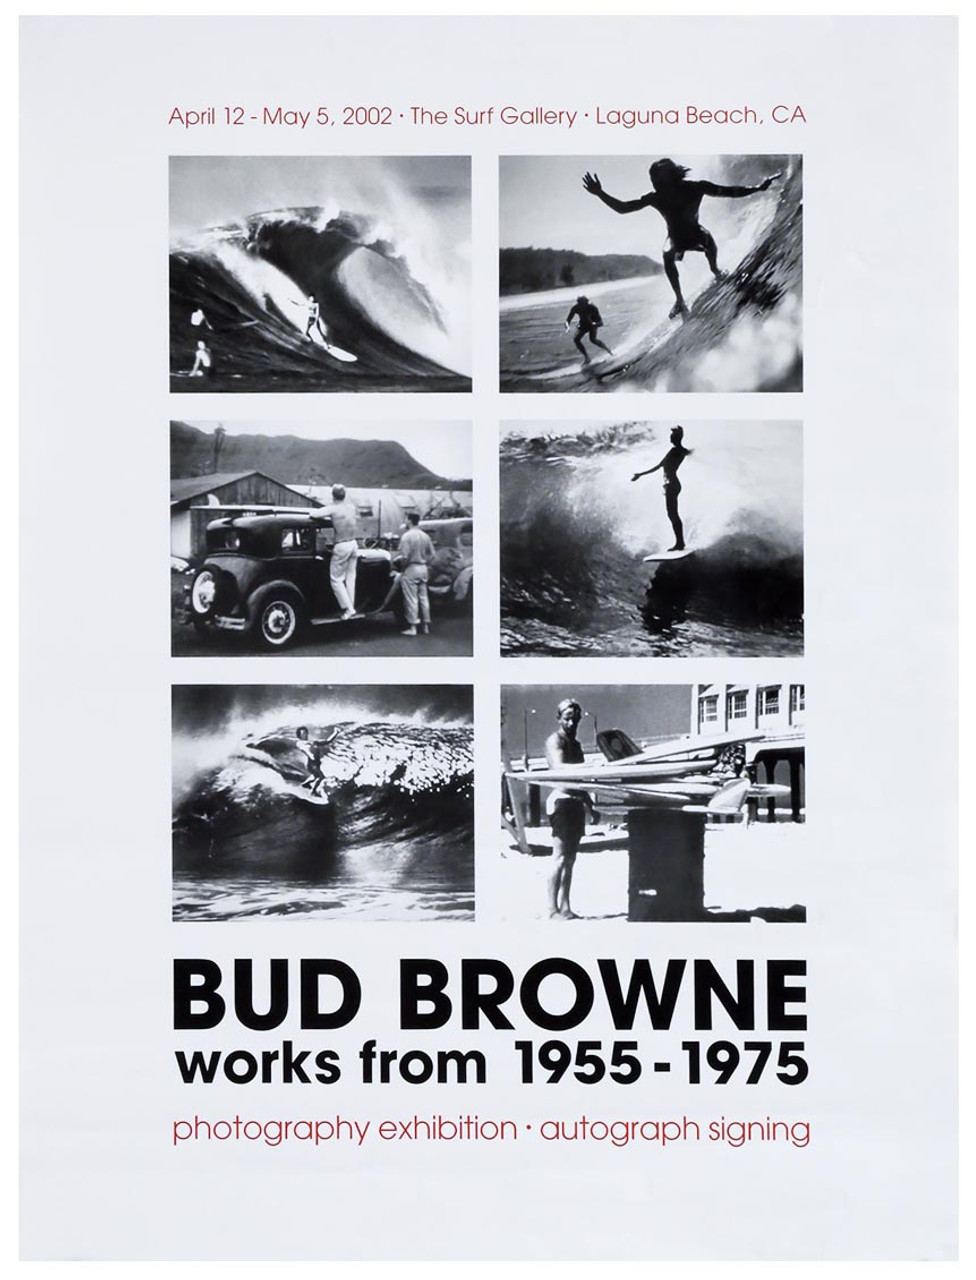 Bud Browne Works From 1955 1975 Surf Exhibit Poster